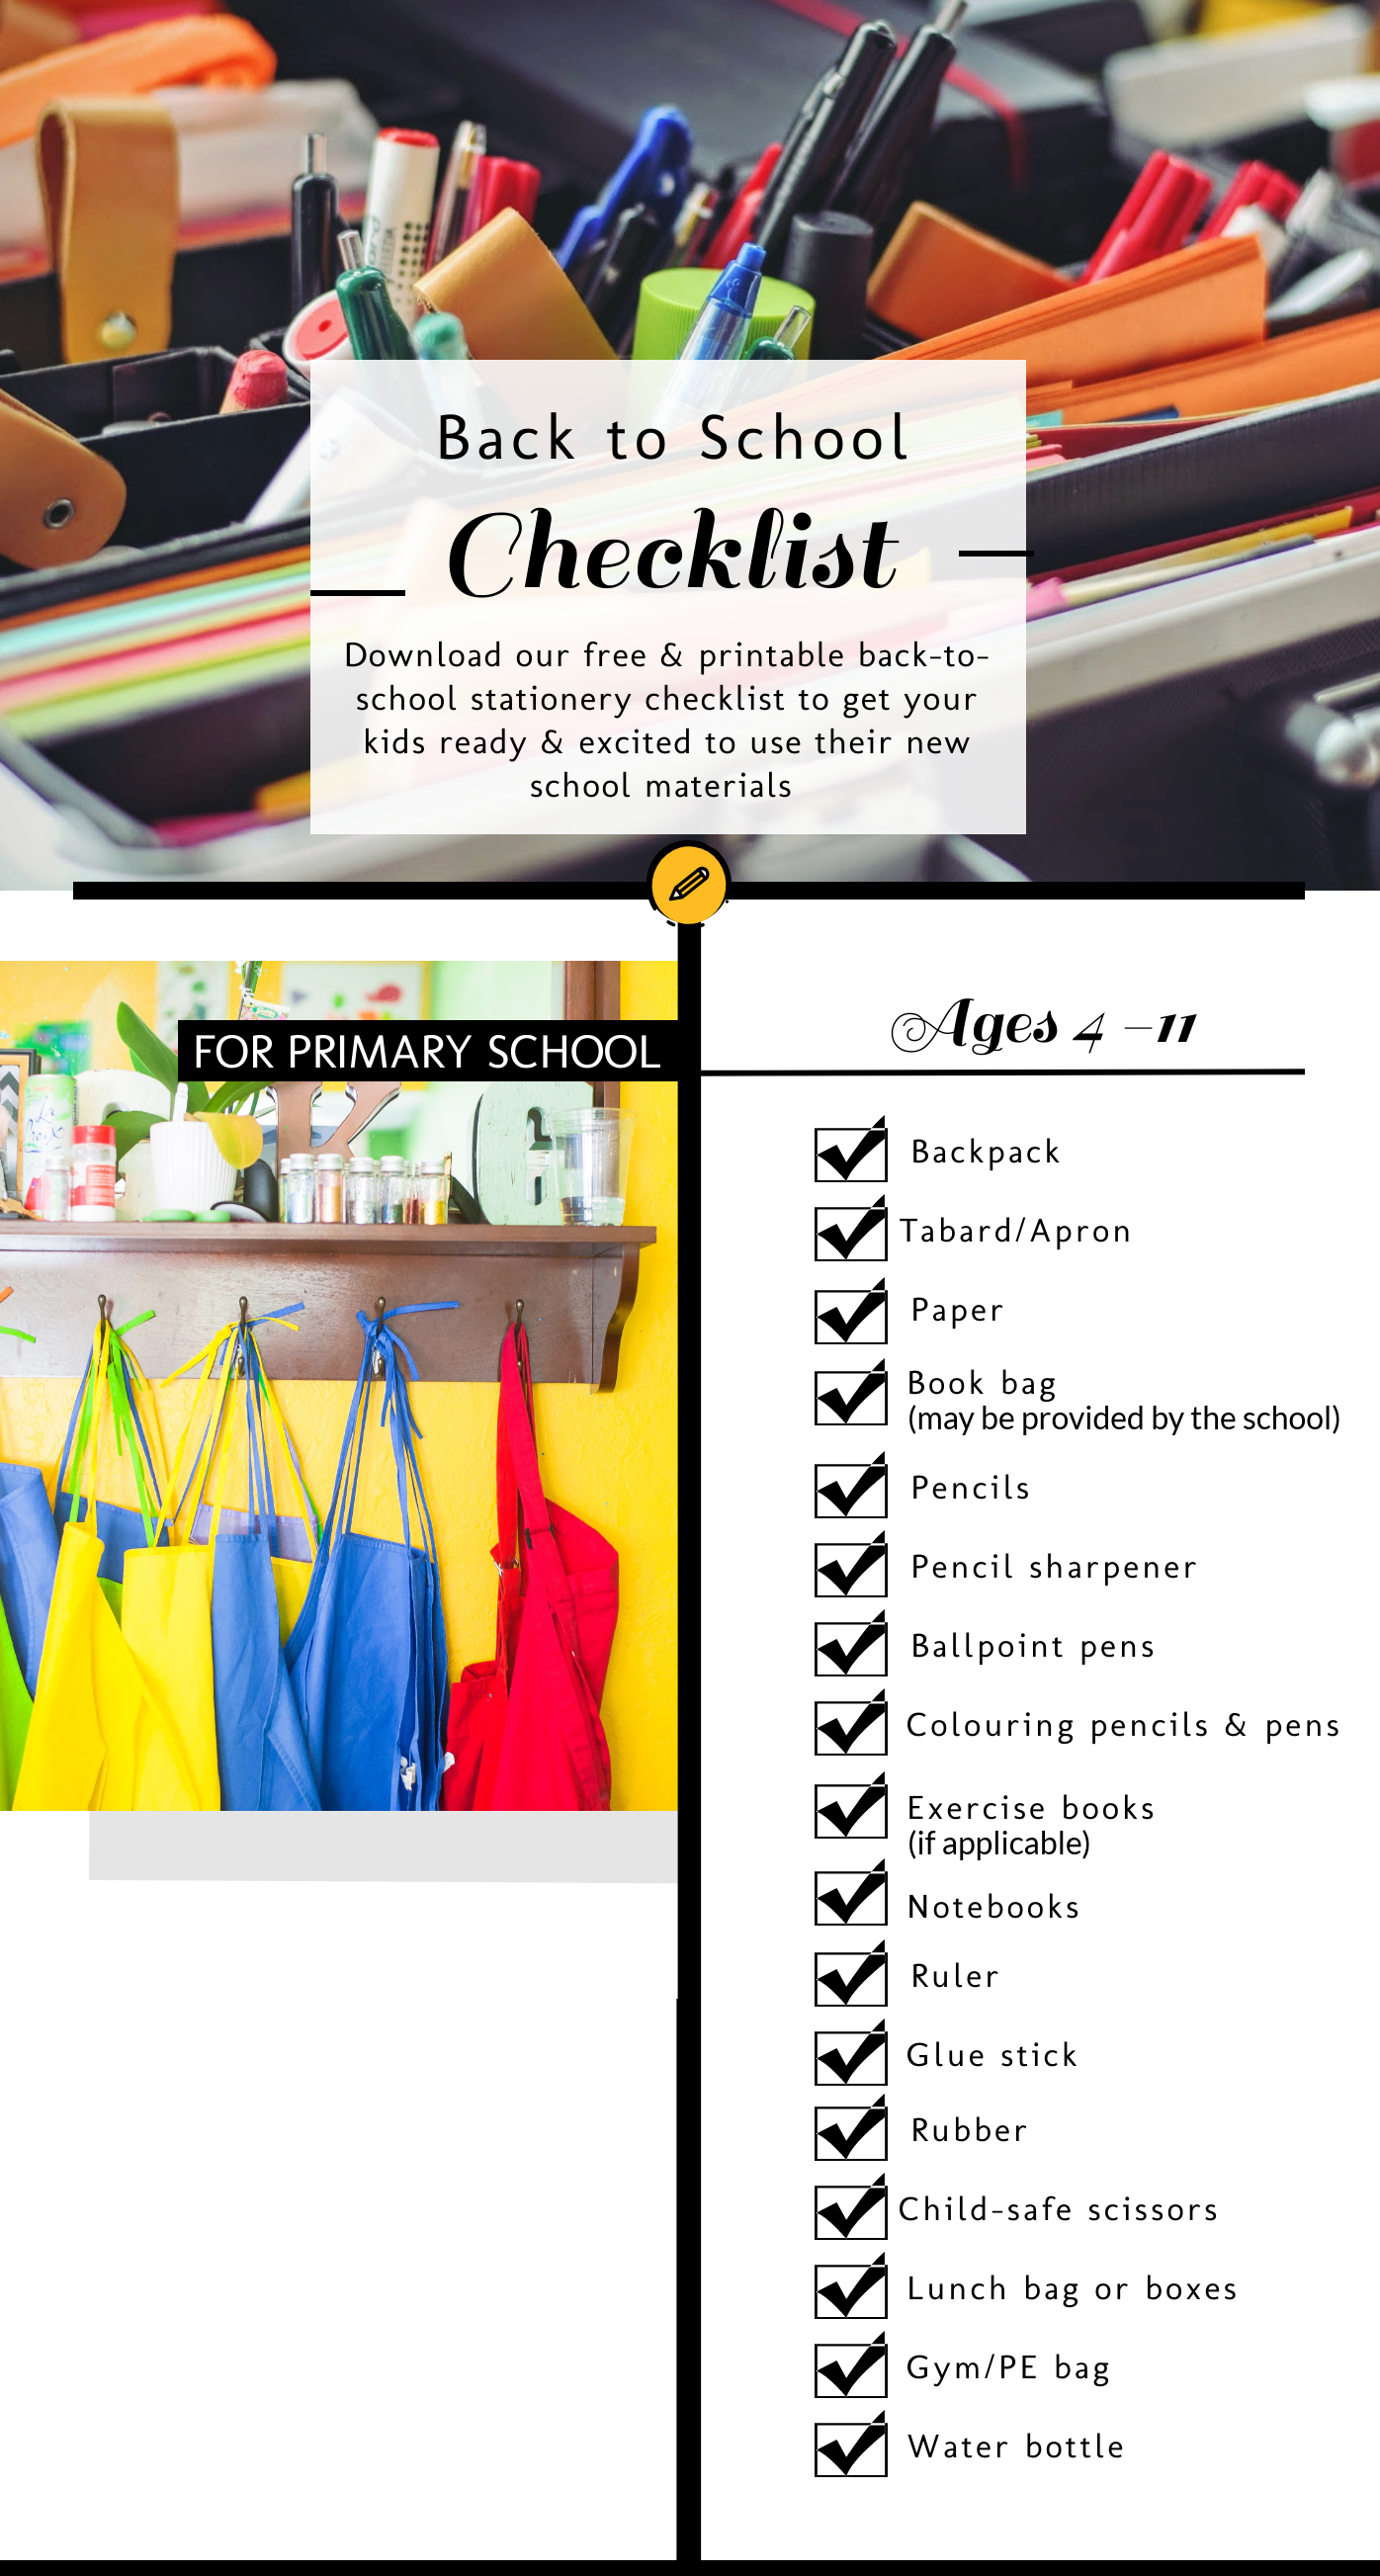 Back-to-School Checklist